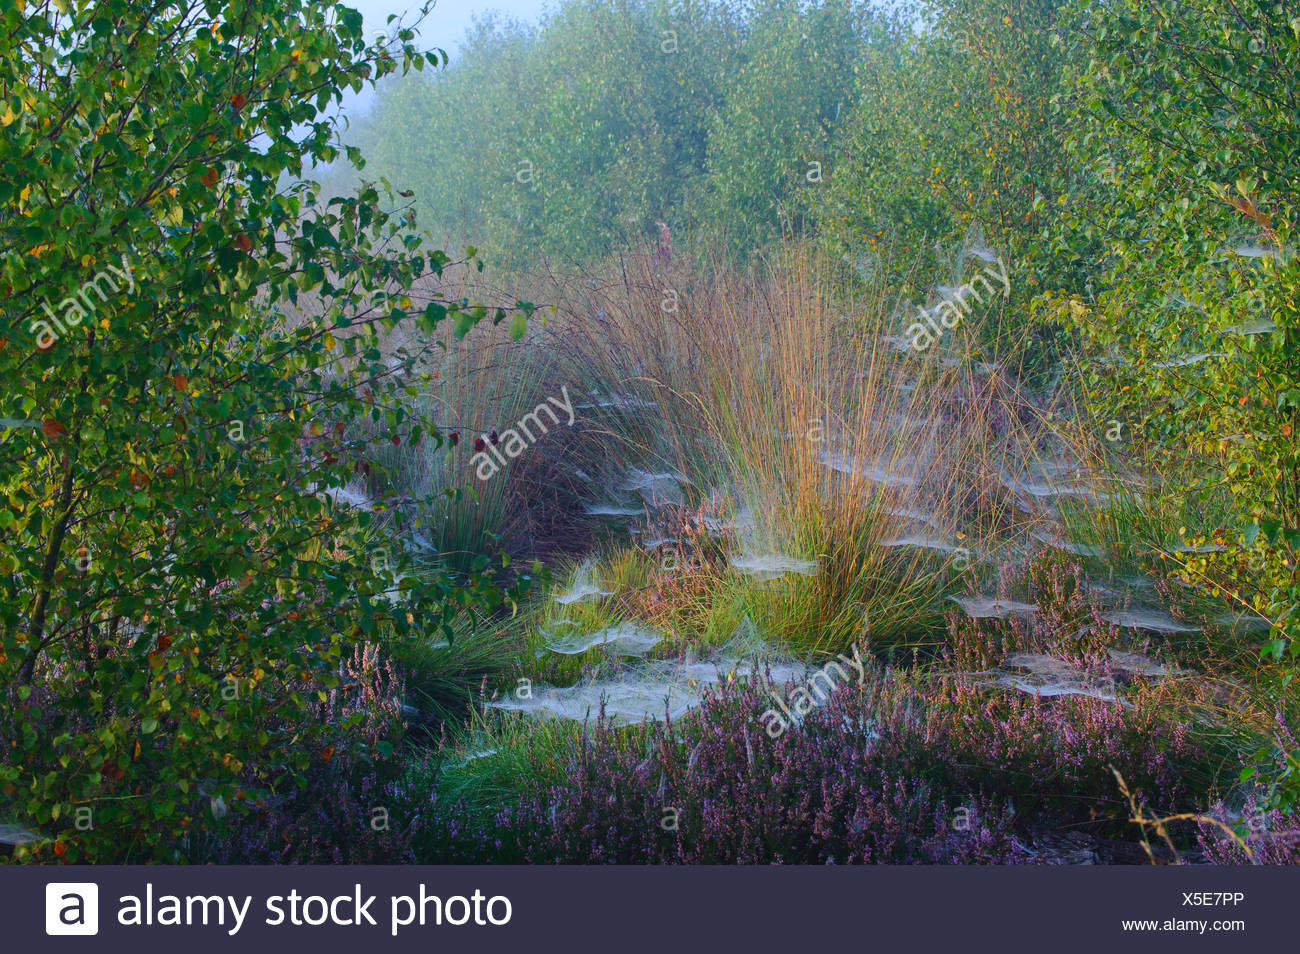 spider webs in birches and rushes, Germany, Lower Saxony - Stock Image